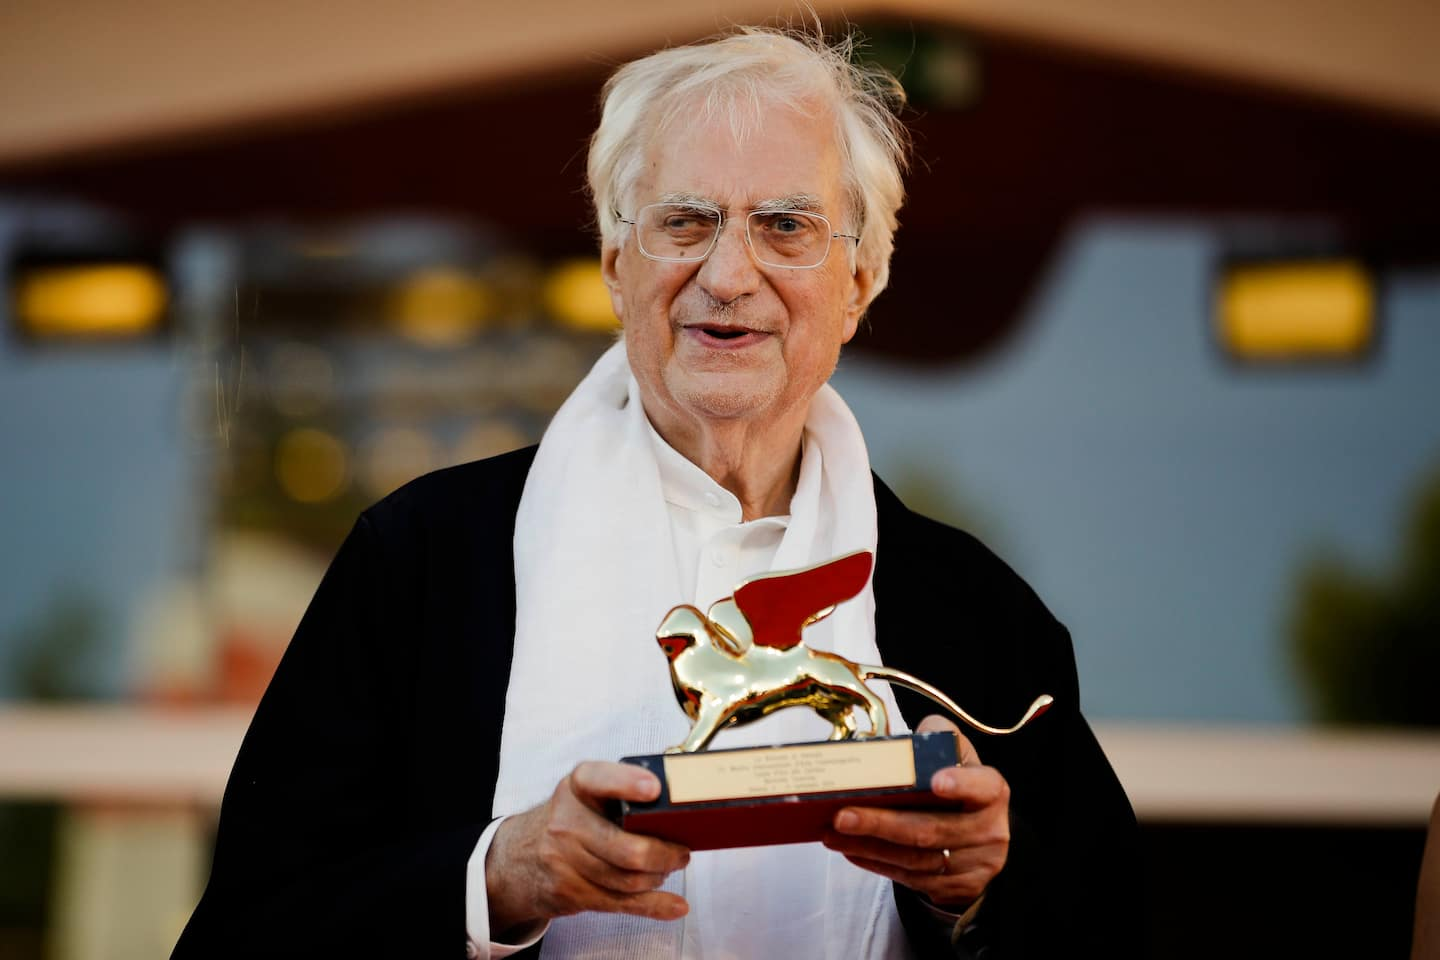 Bertrand Tavernier, versatile and acclaimed French filmmaker, dies at 79